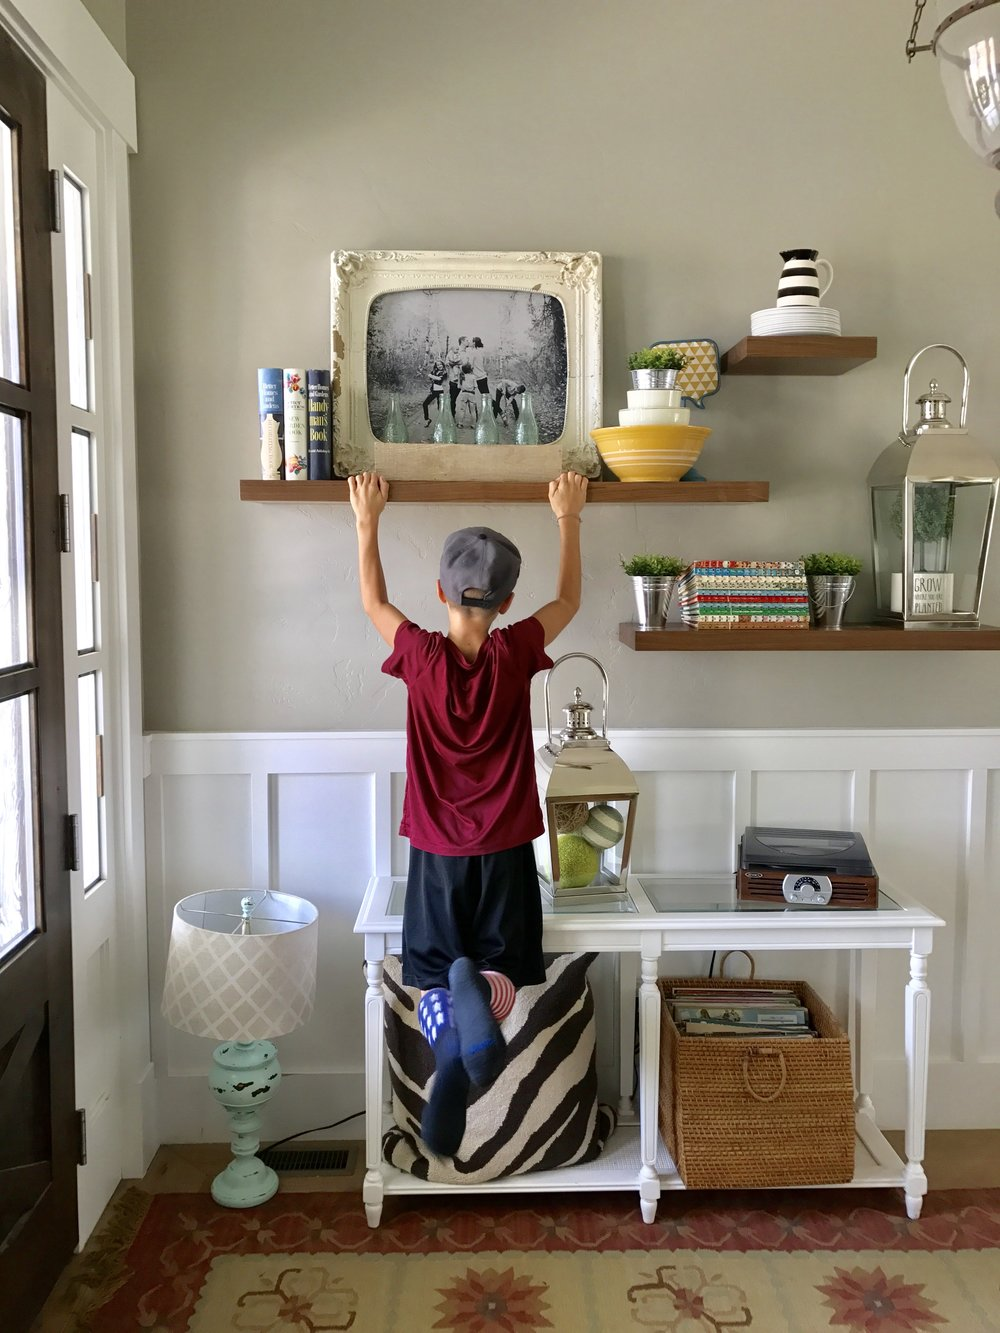 UltraShelf - This one's from us here at UltraShelf. We're not trying to brag, but our shelving is kid-proof. Well, not really, but they do support a lot of weight!